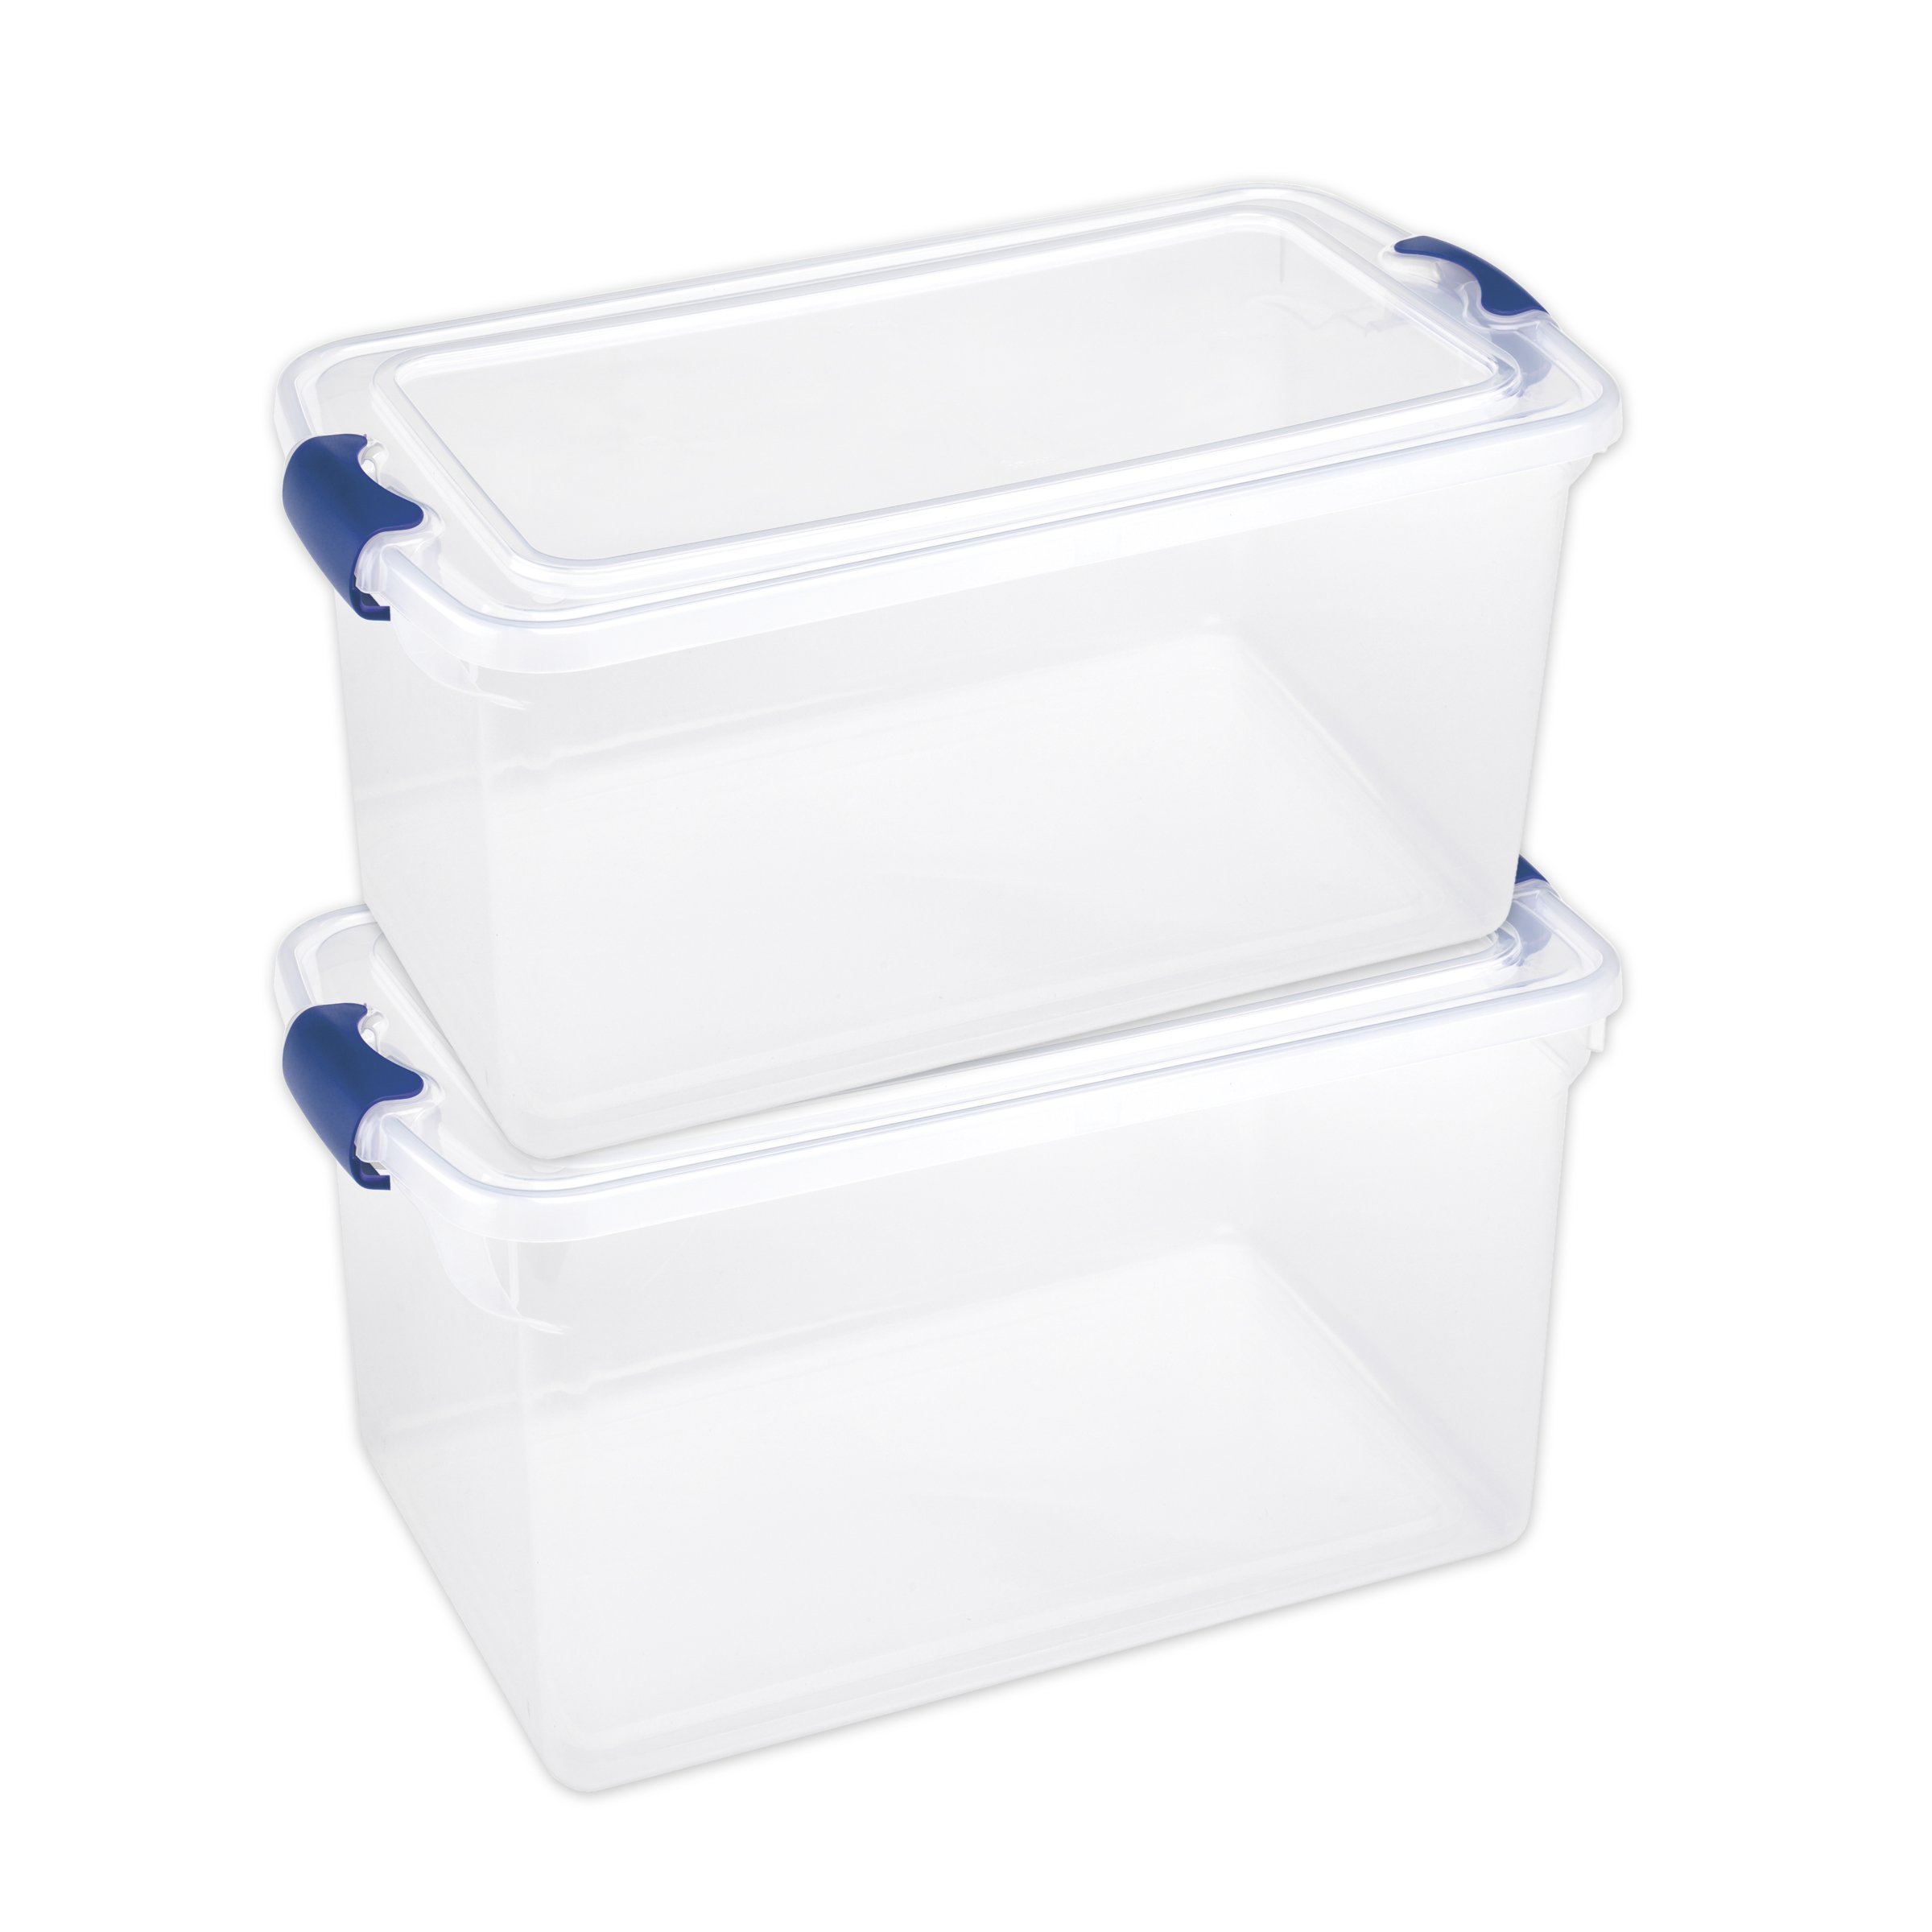 Homz Plastic Storage, Modular Stackable Storage Bins with Blue Latching Handles, 66 Quart, Clear, 2-Pack by Homz (Image #4)